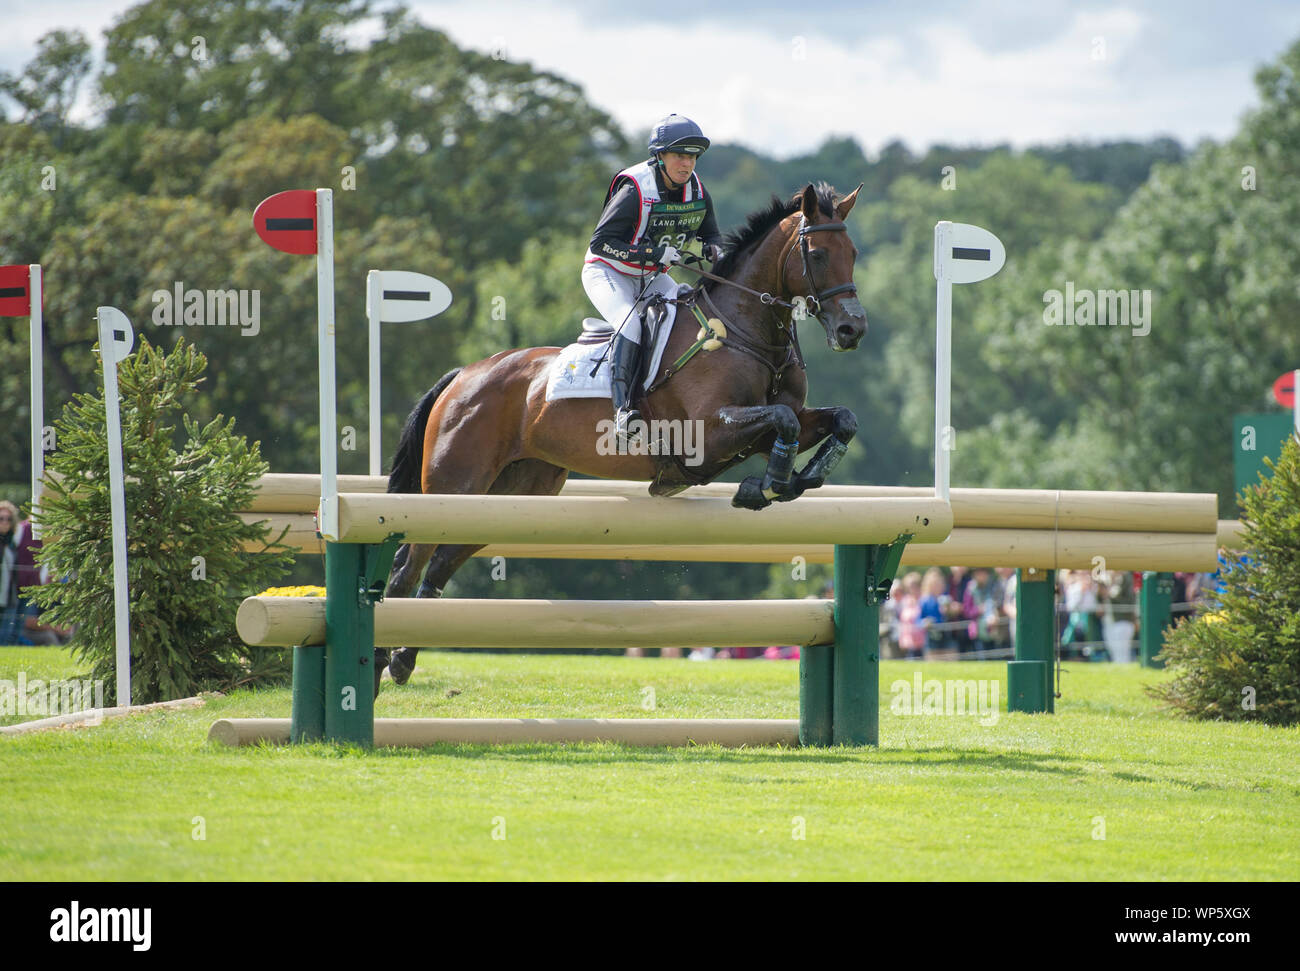 Stamford, UK, Saturday 7th September, 2019. Piggy French (GBR) riding Vanir Kamira during the Land Rover Burghley Horse Trials,  Cross Country phase. © Julie Priestley/Alamy Live News Stock Photo